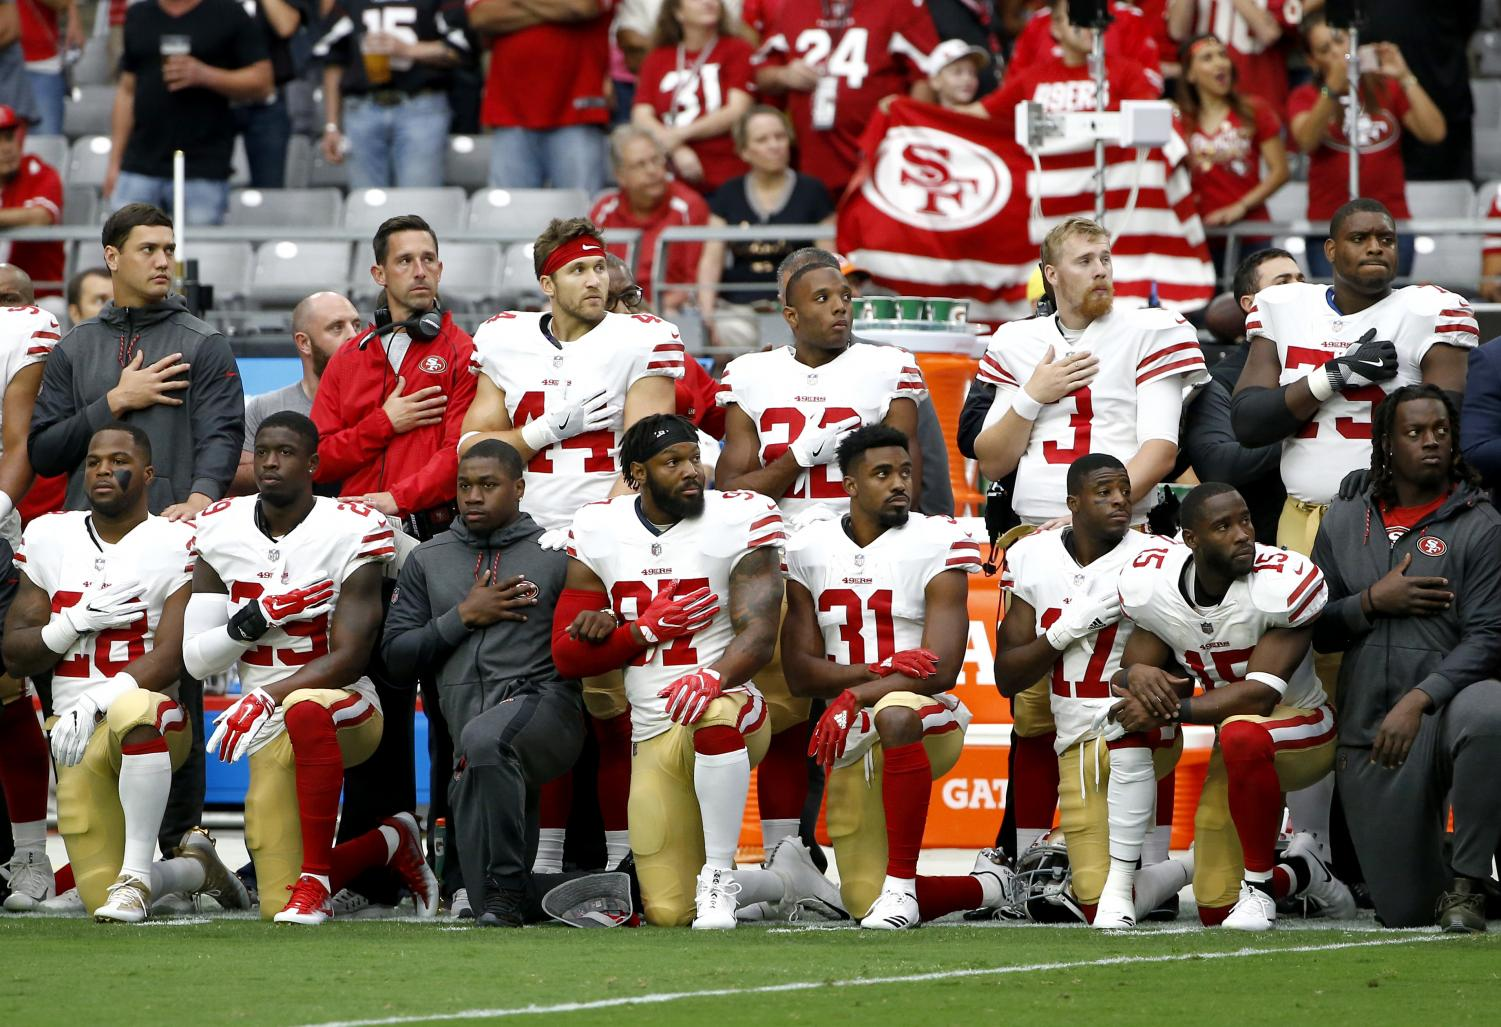 Last year, anthem protests by NFL players incited considerable controversy.